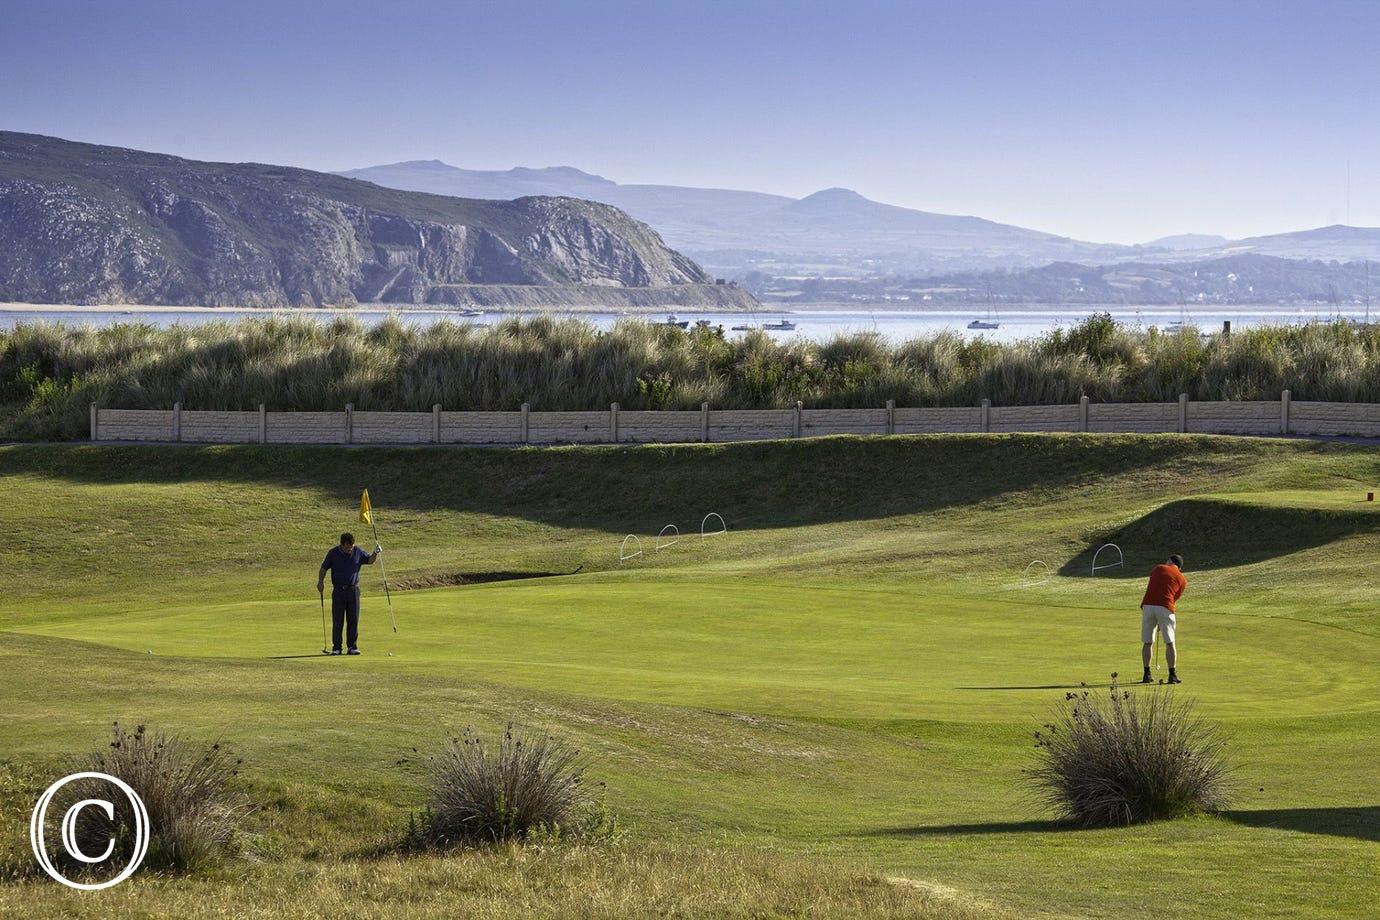 Abersoch's 18 hole golf course, adjoining the beach